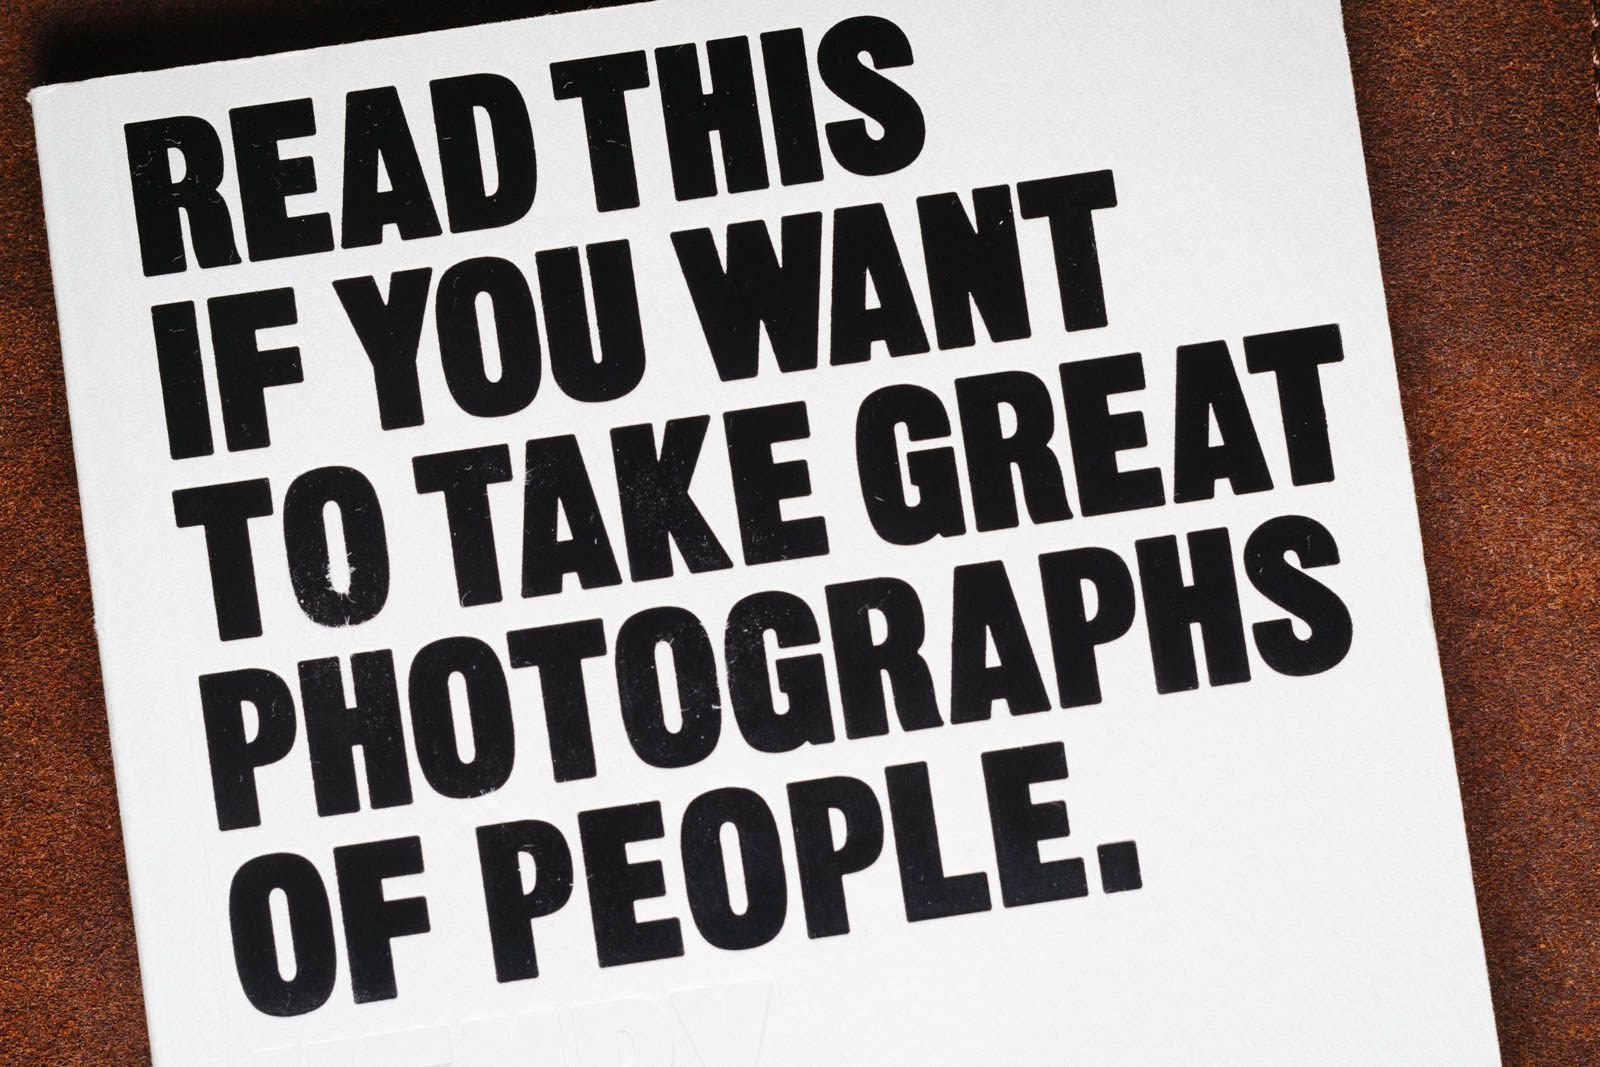 Machine generated alternative text: READ THIS IF WANT TO GREAT PHOTOGRAPHS OF PEOPLE.